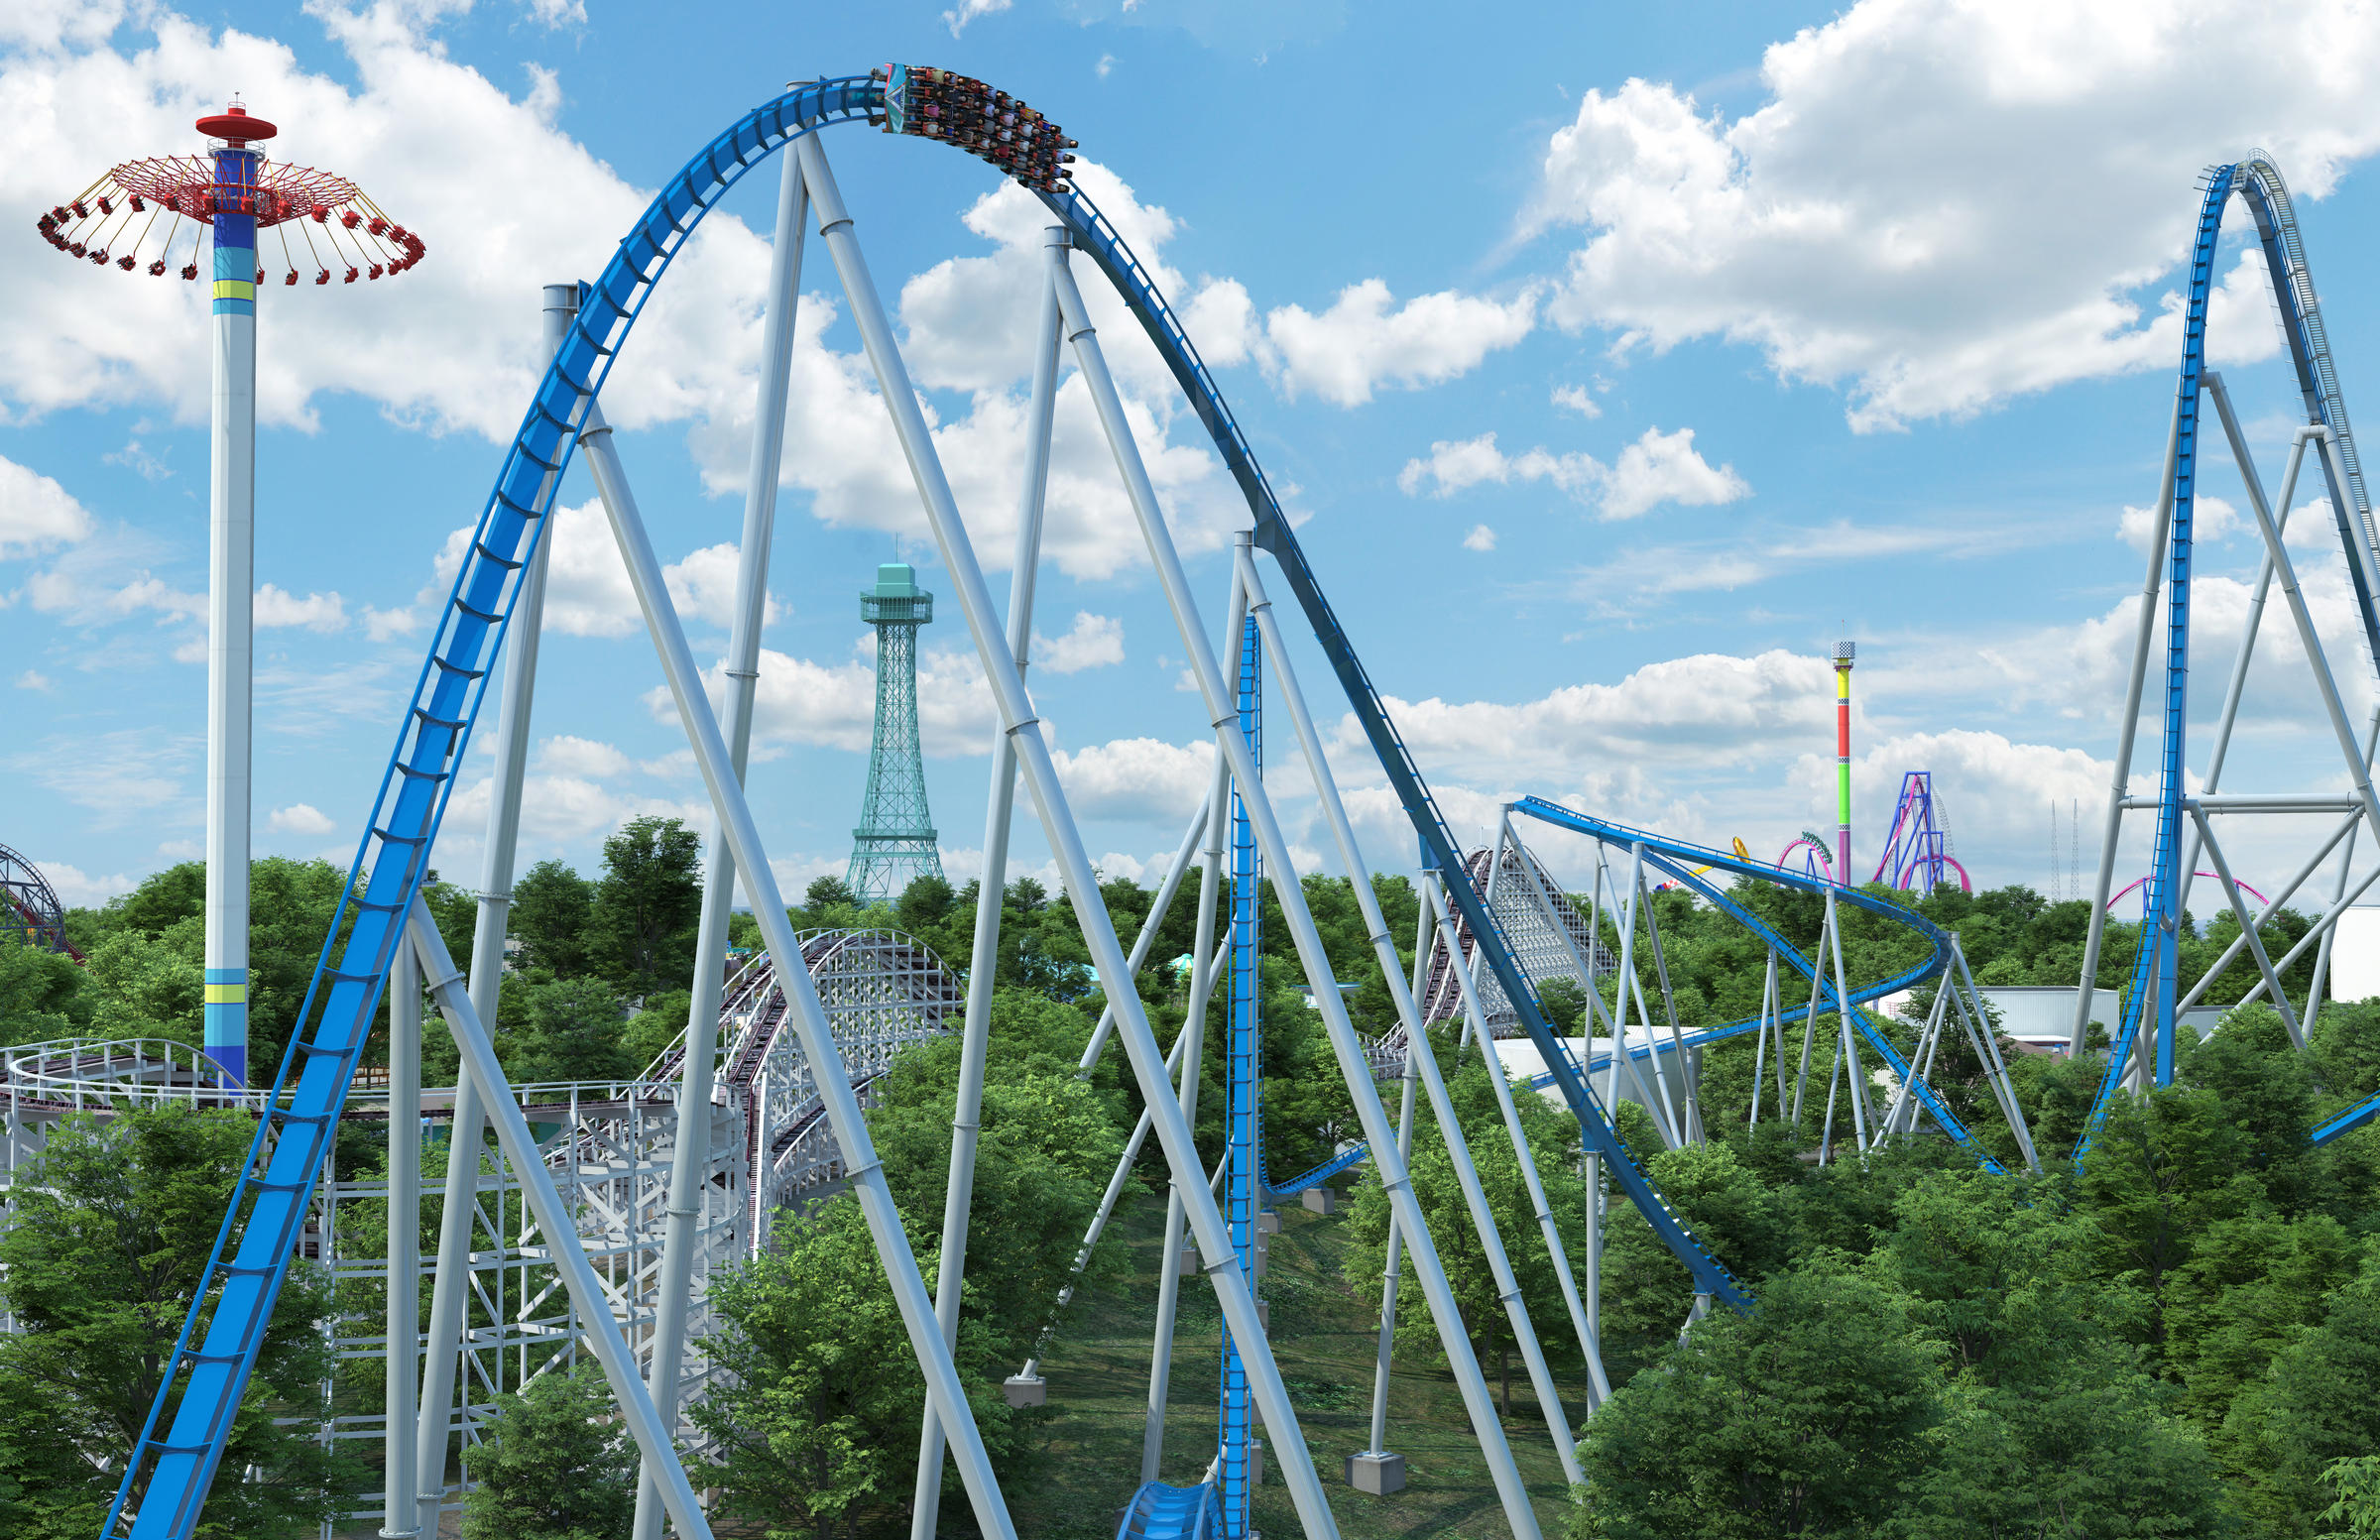 Kings Island Calendar 2020 Kings Island Will Debut 'Orion' Giga Coaster In Spring 2020 | WKSU